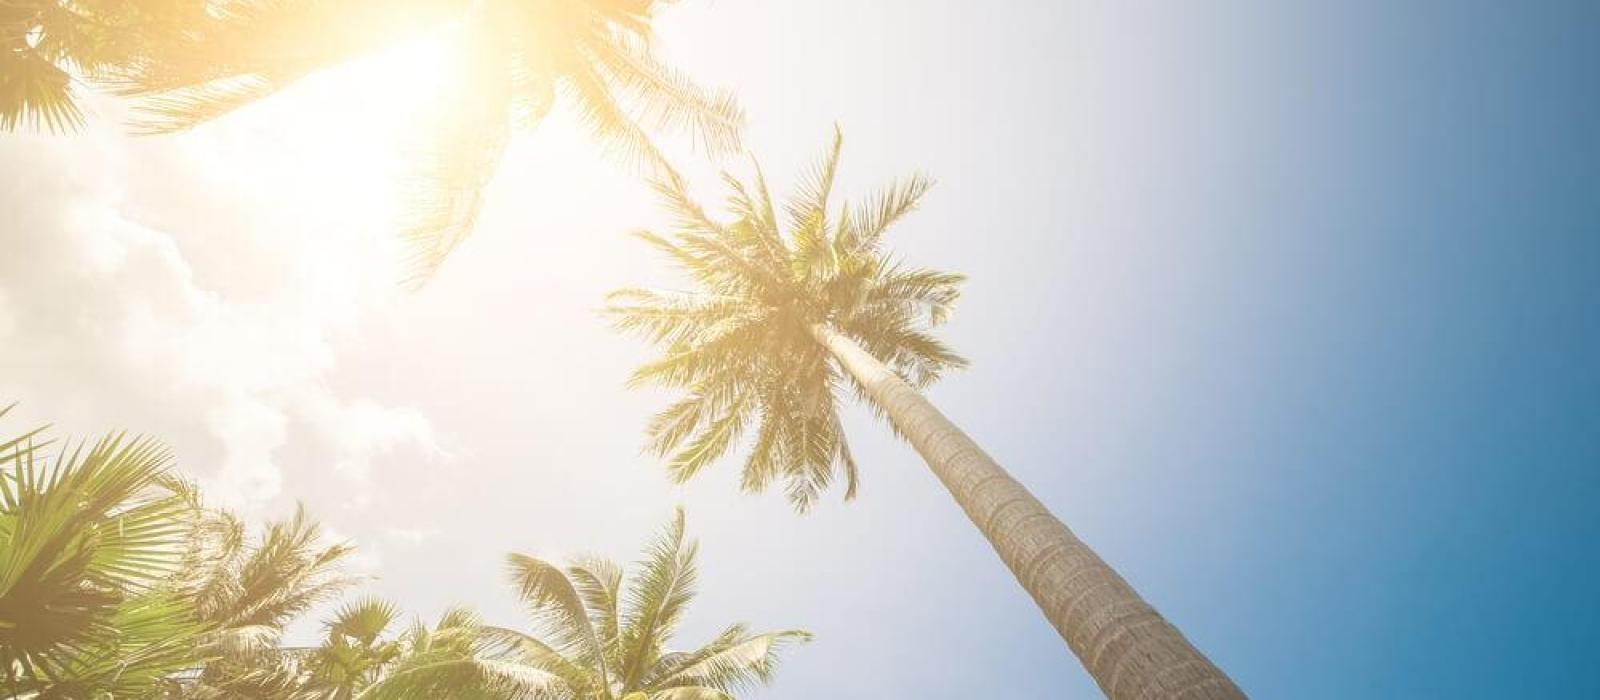 affordable patio designs for your backyard. – mypatiodesign